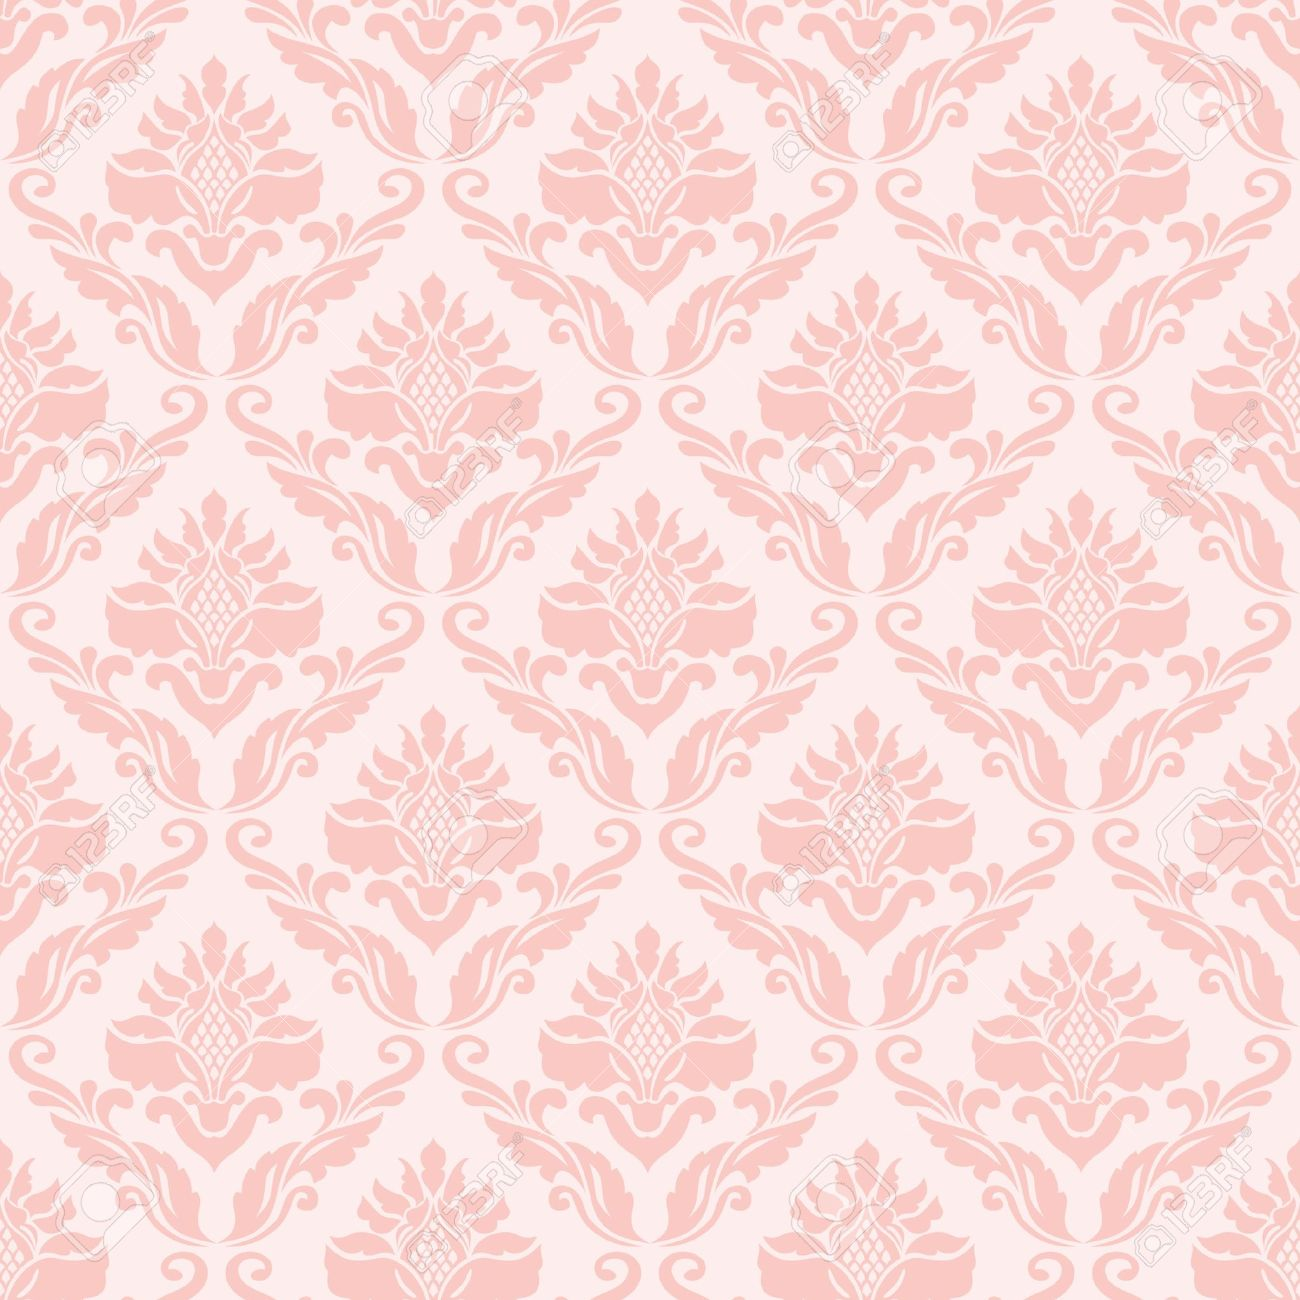 Light Pink Vintage Wallpaper